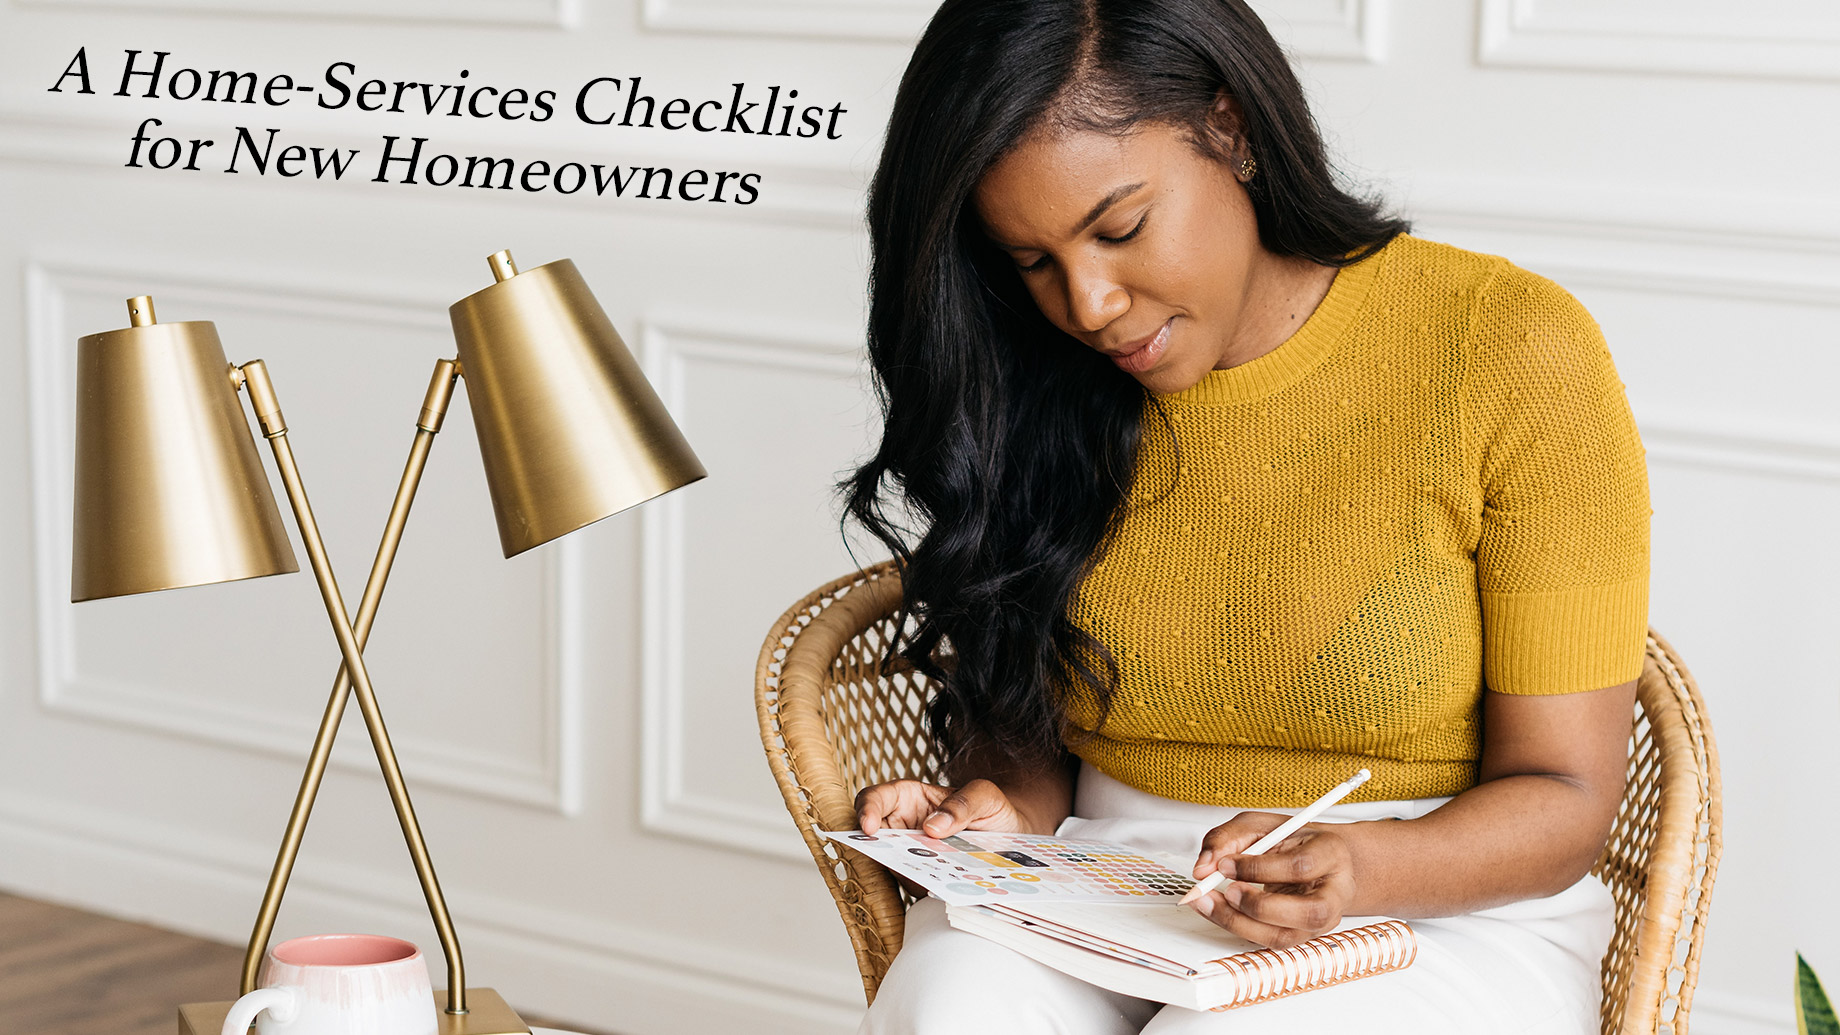 A Home-Services Checklist for New Homeowners